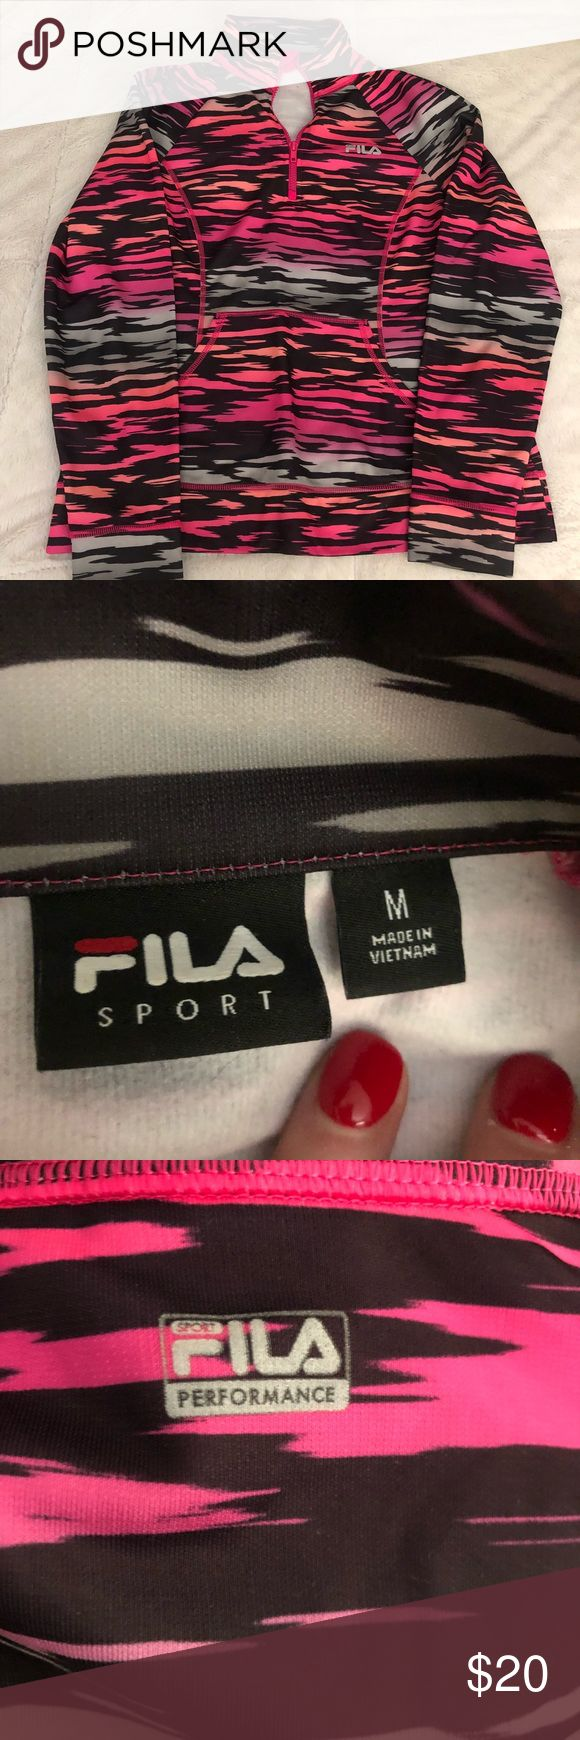 File long sleeved gym top Barely worn. Mint condition Fila Tops Sweatshirts & Hoodies